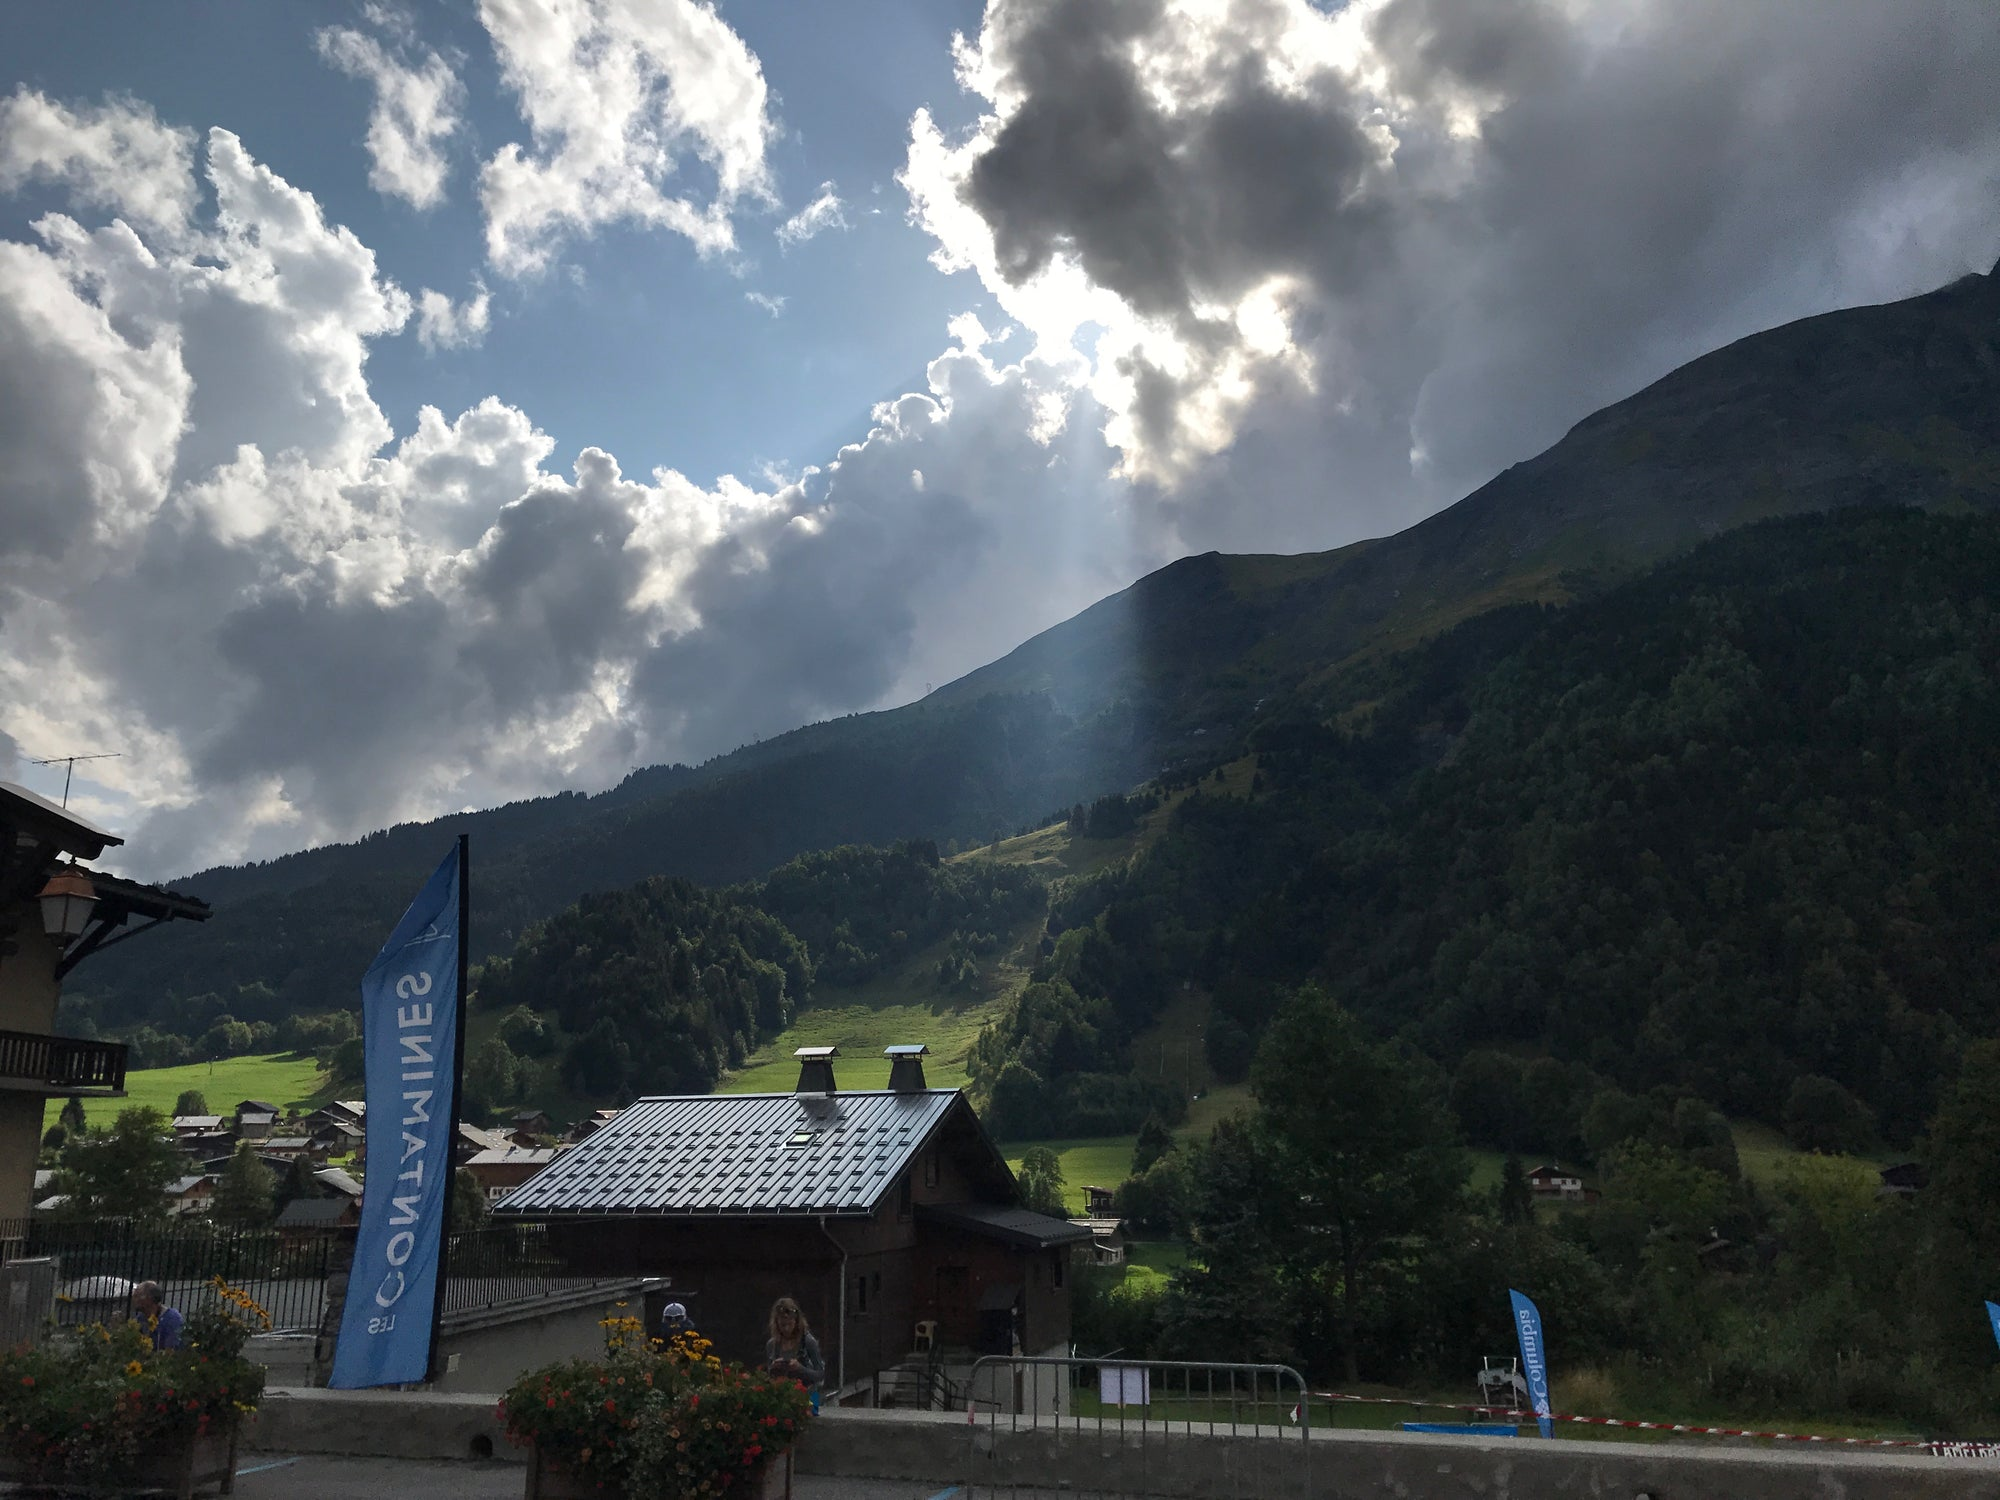 UTMB Photo Essay: The Calm Before the Storm